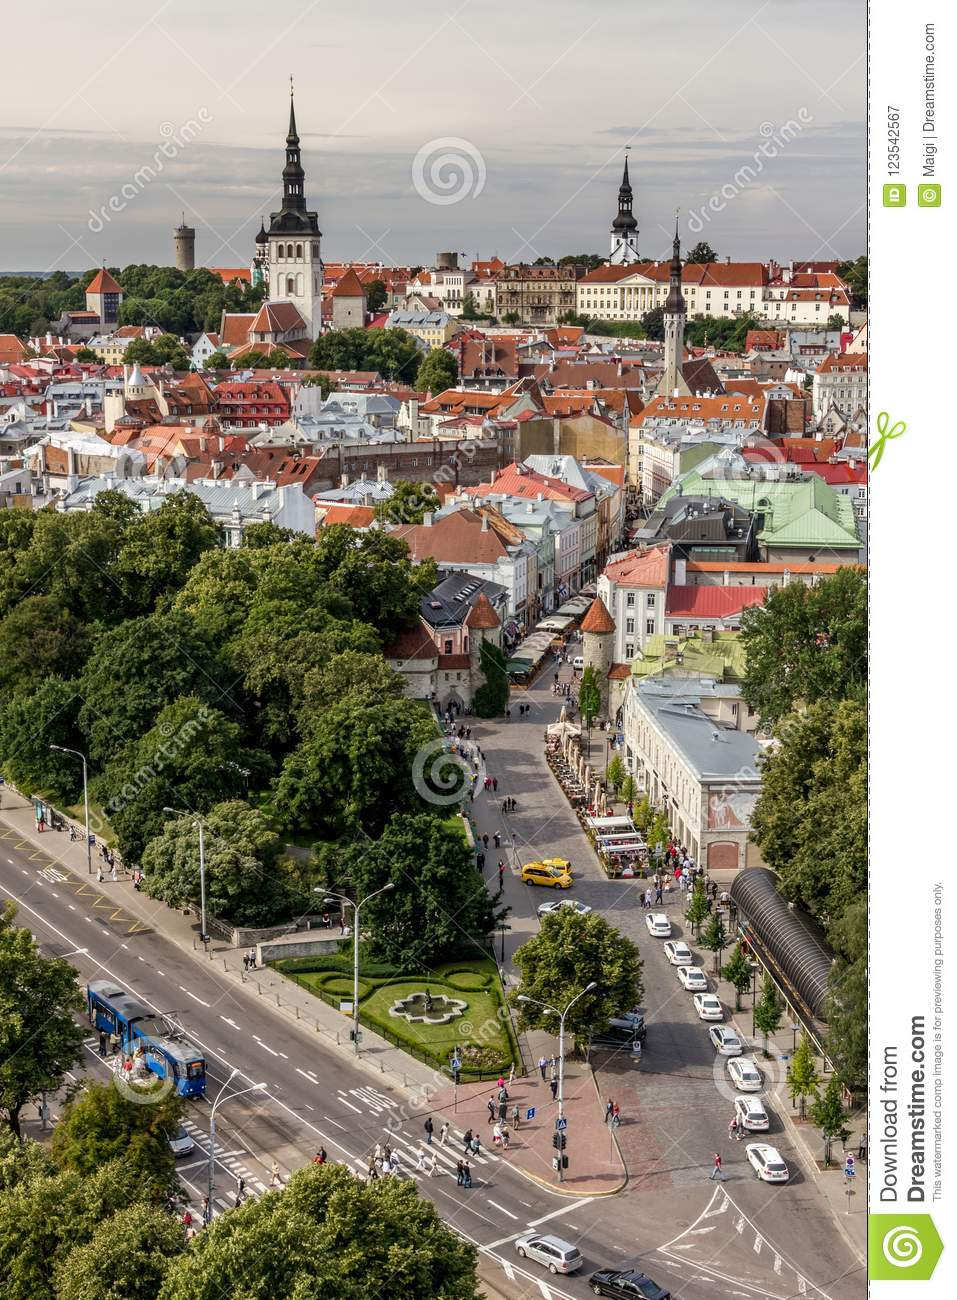 Download View Over Old Town Of Tallinn Stock Image - Image of baltic, rooftops: 123542567